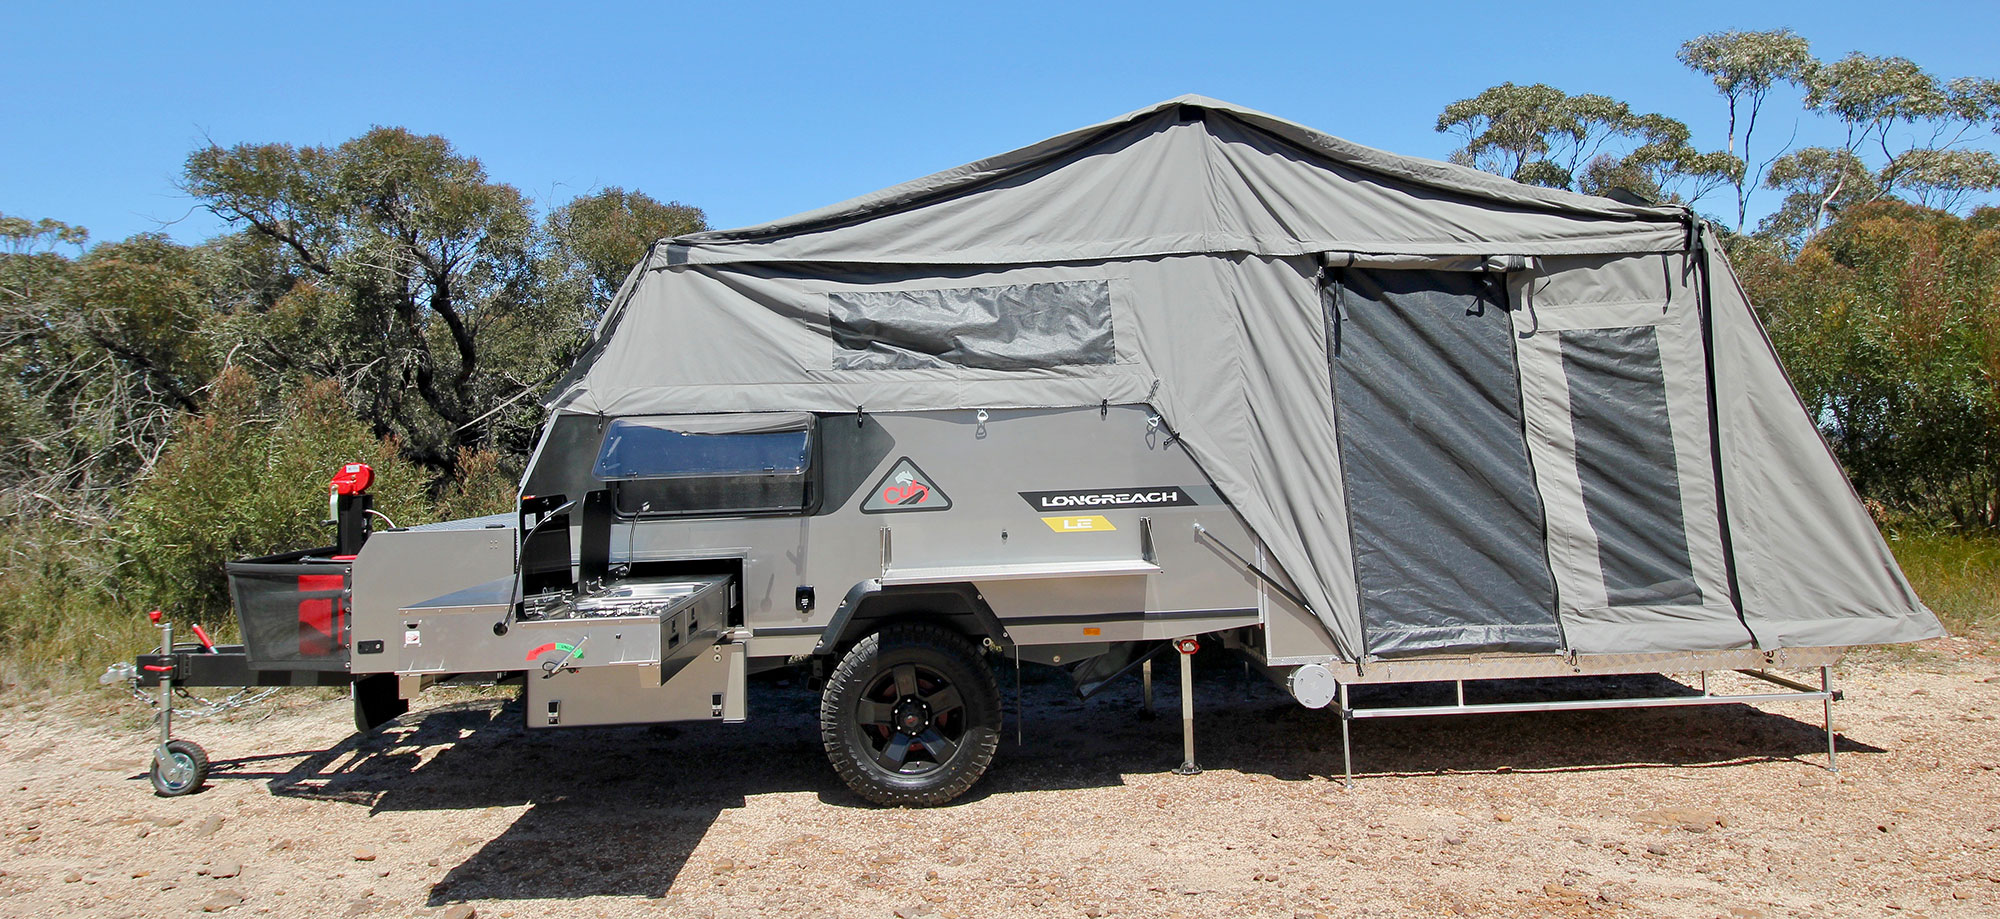 Rvd051 Rv Camper Trailer Review Cub Longreach Le 4 Img 1194